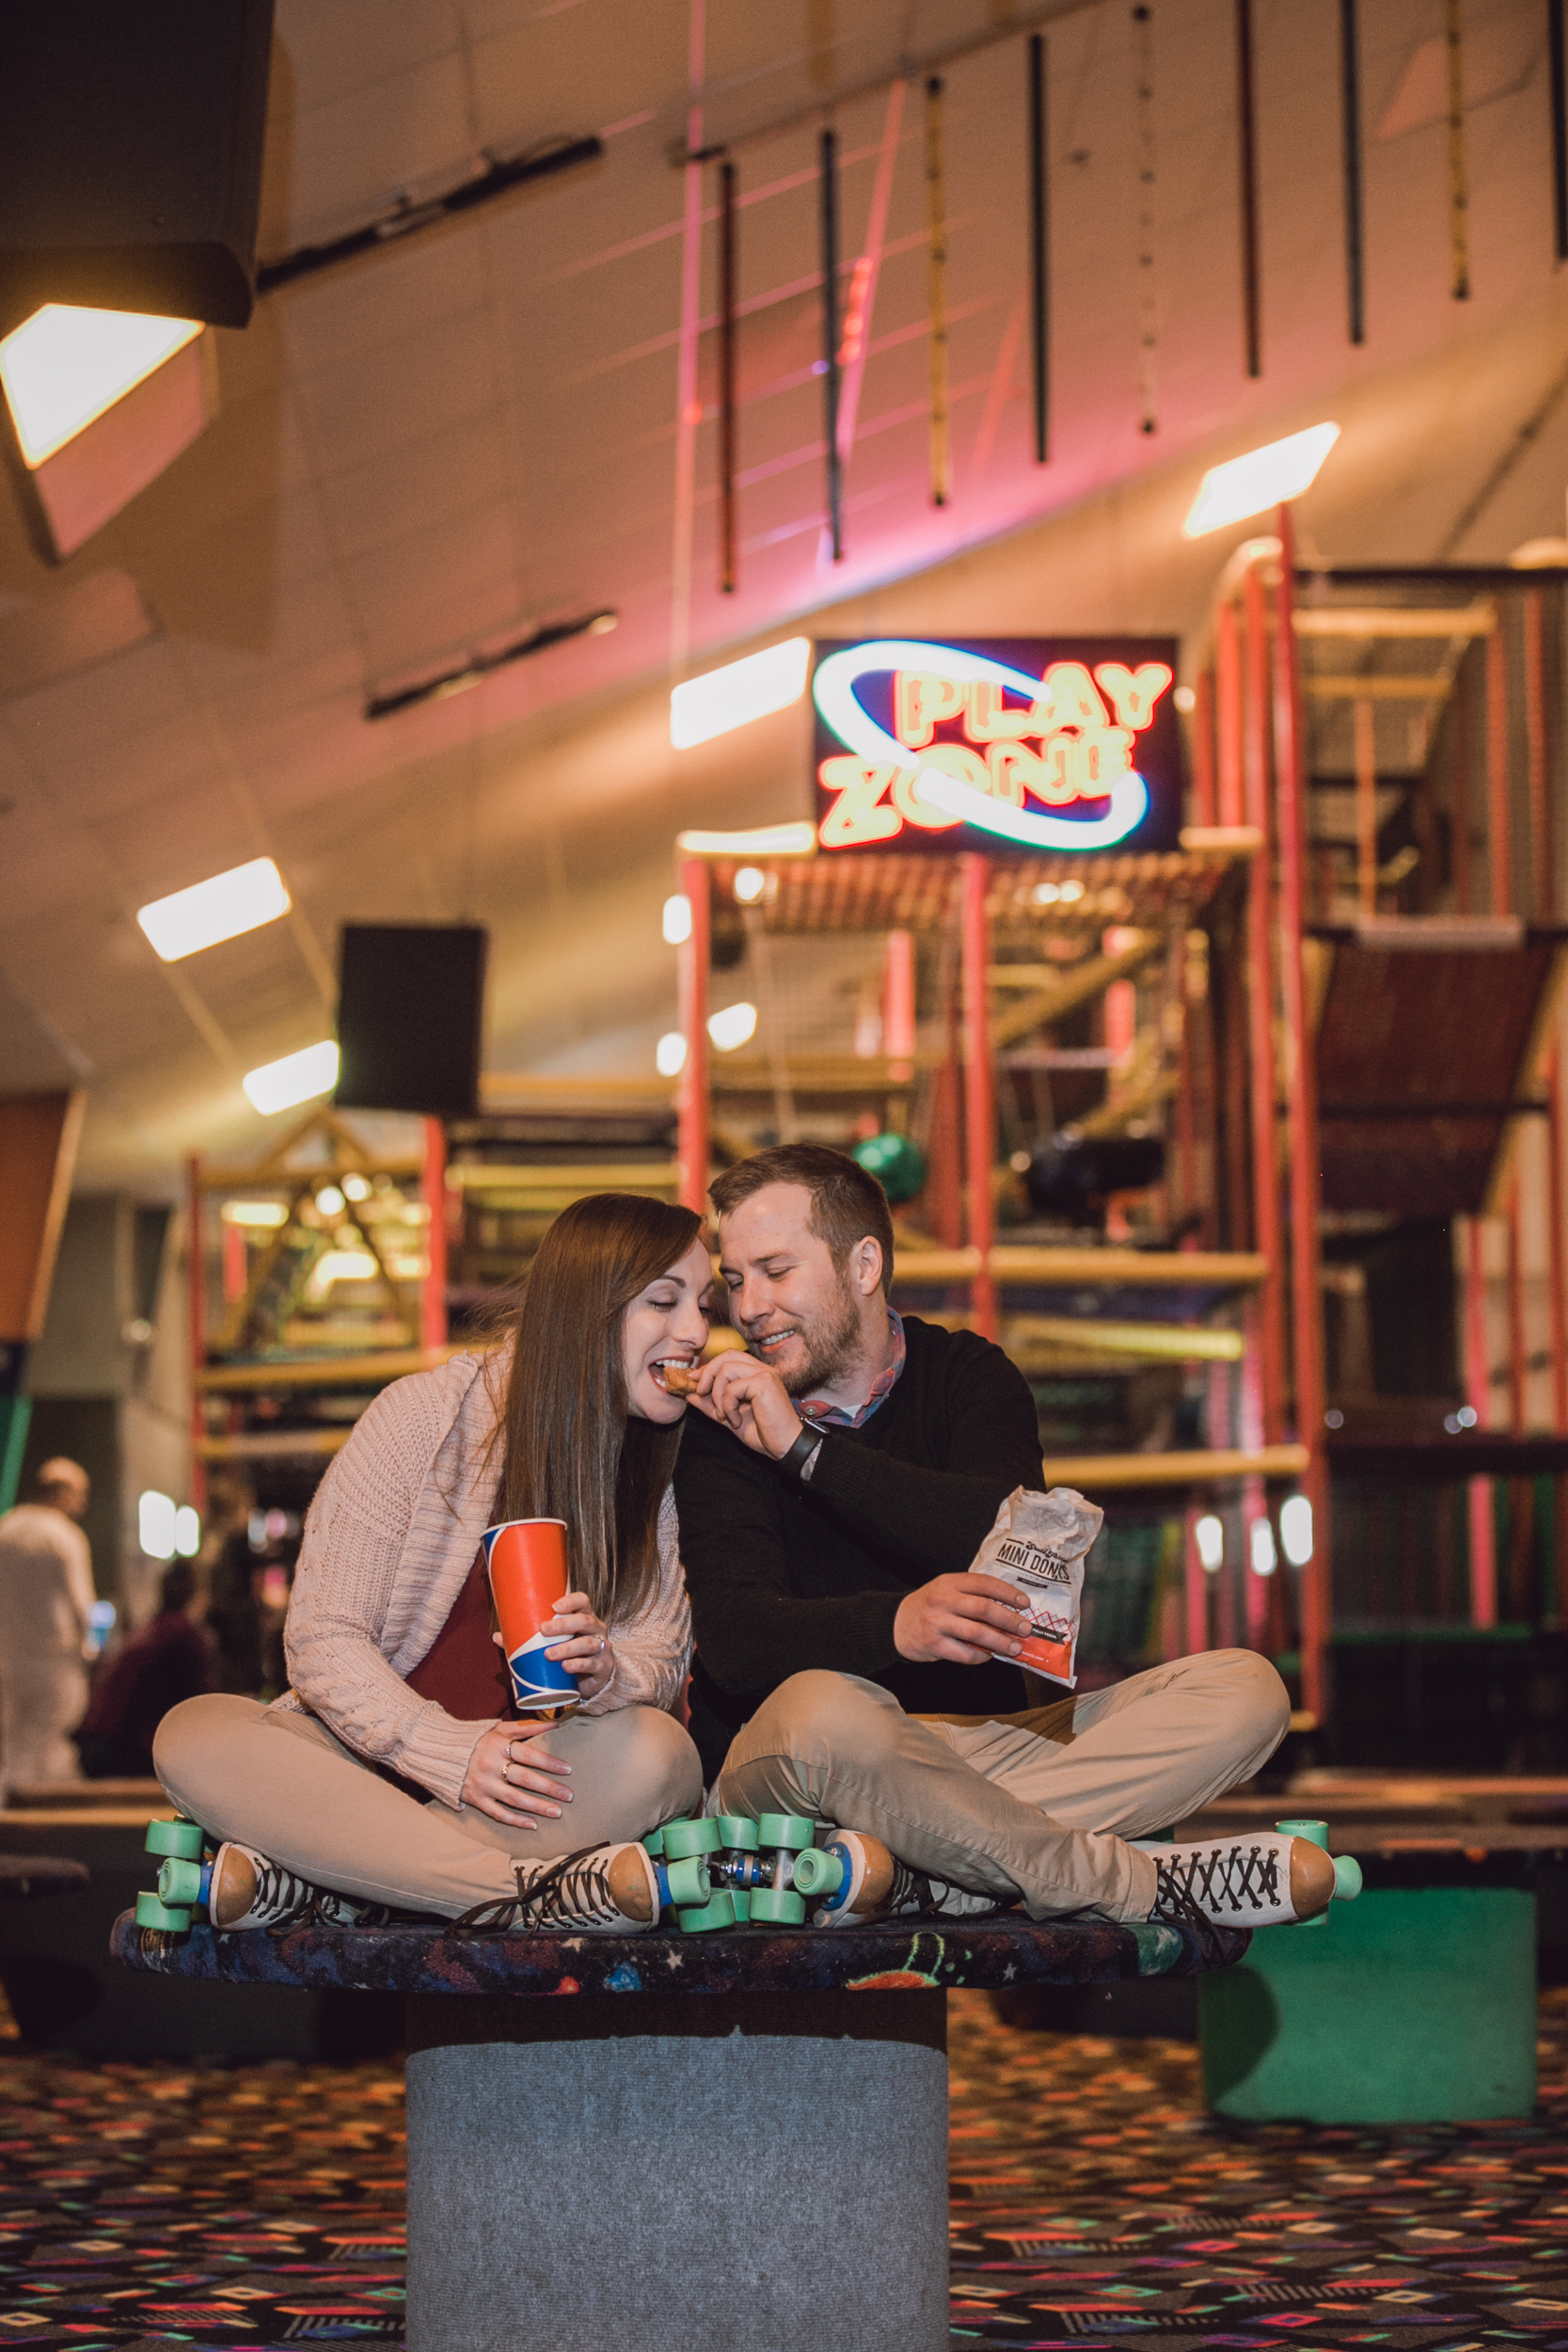 roller rink engagement session, wooddale fun zone engagement session, roller skate engagement session, minneapolis cafe lucrat engagment session, cafe lucrat engagement session, minneapolis minnesota engagement session-www.rachelsmak.com21.jpg